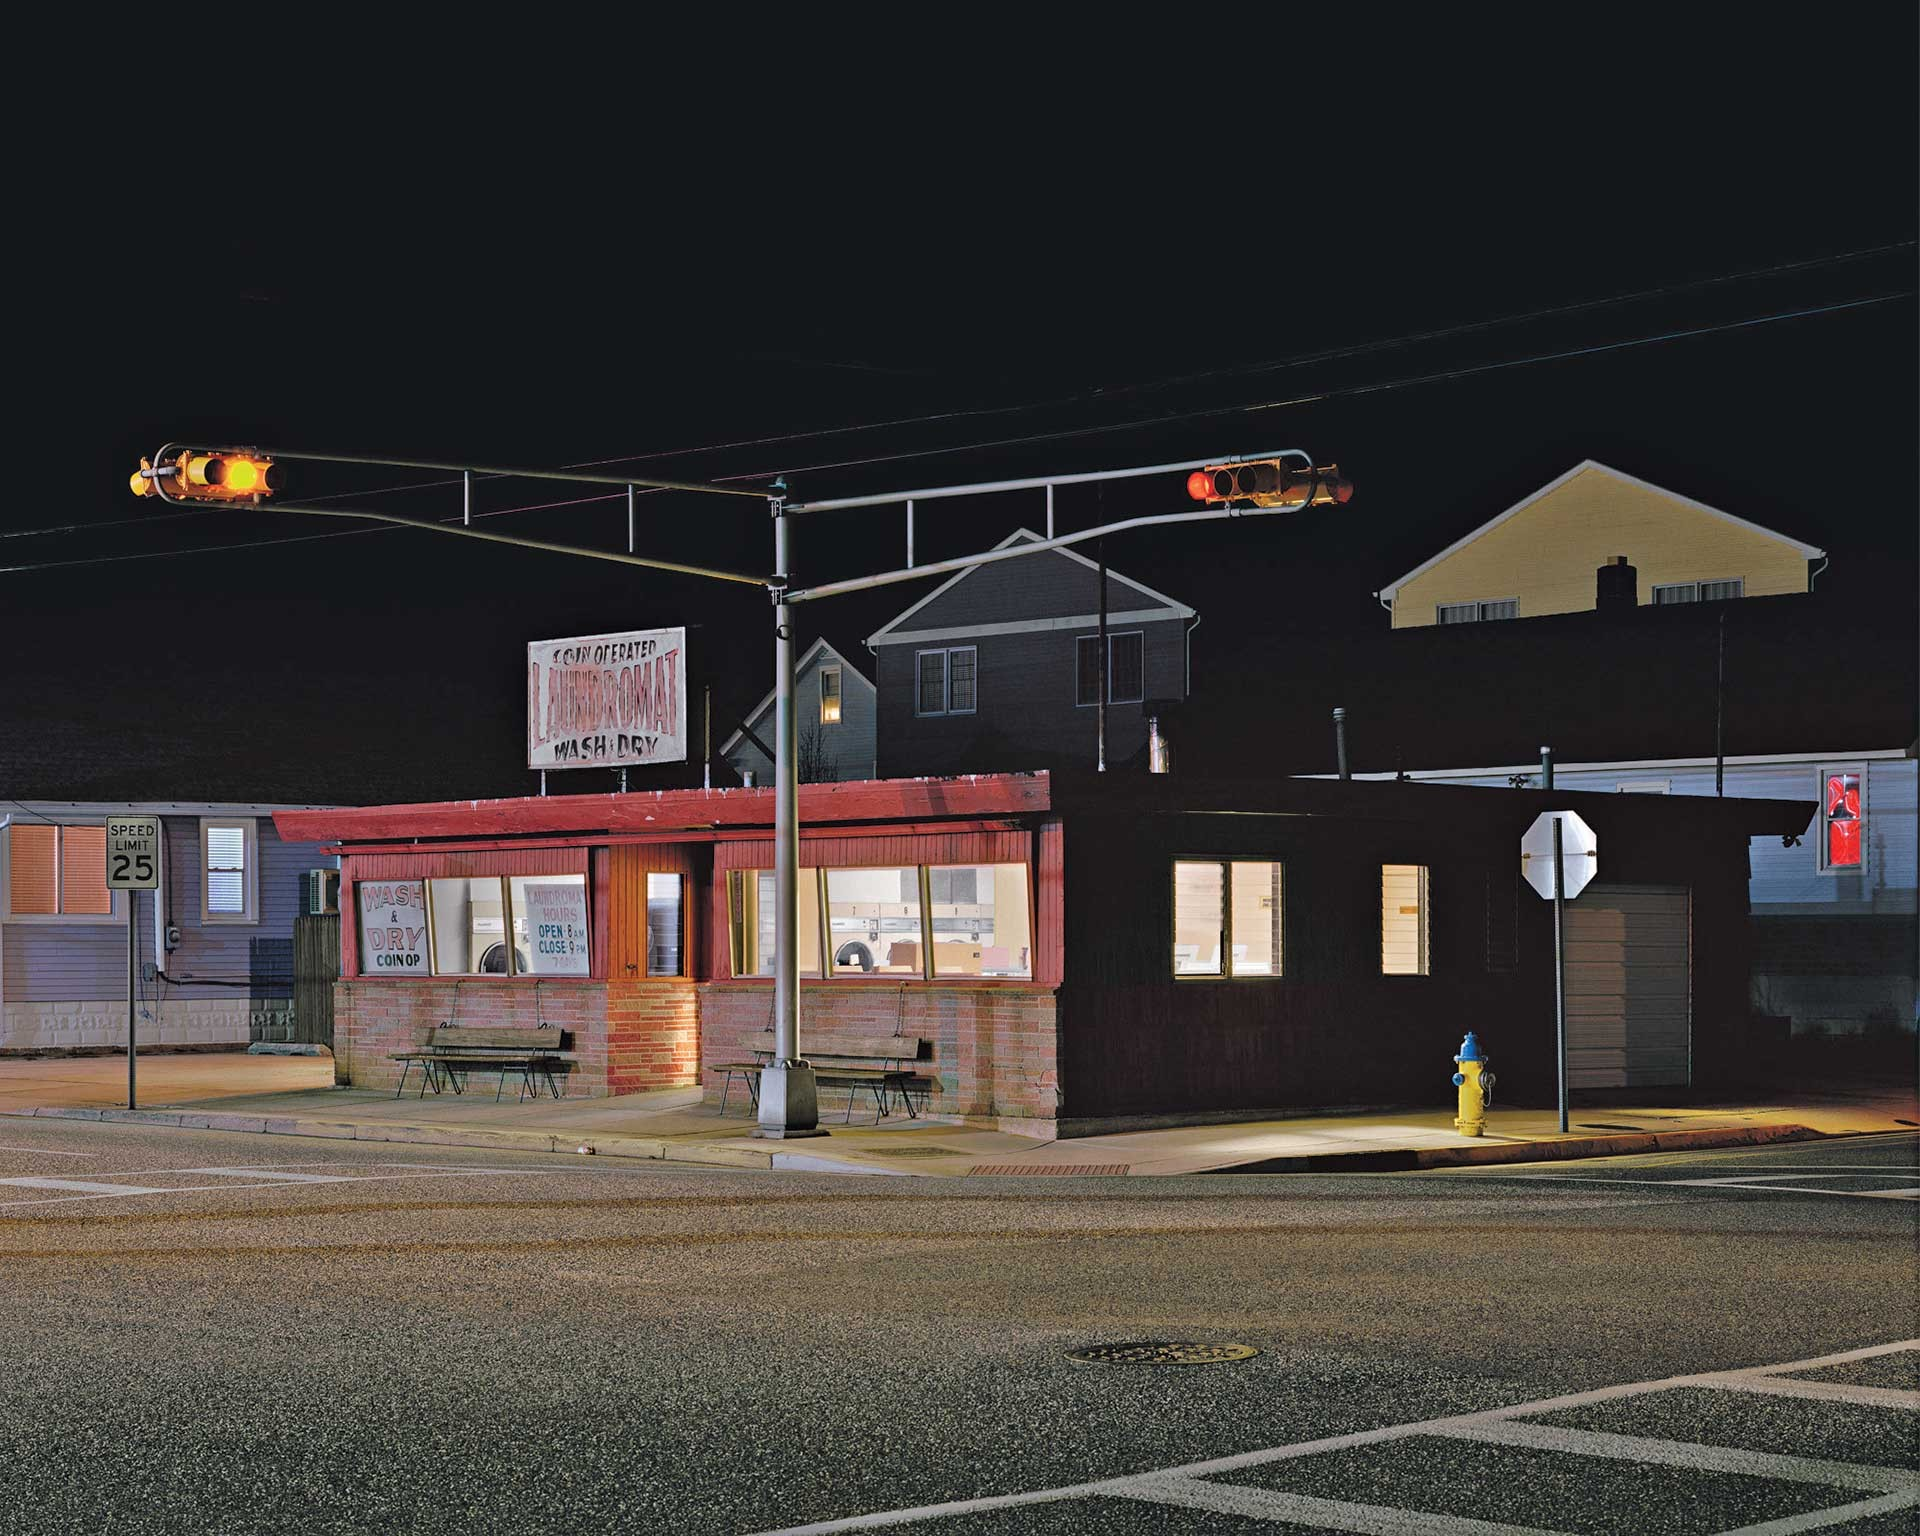 Laundromat (For Hopper), Matthew Brooks, 2018.